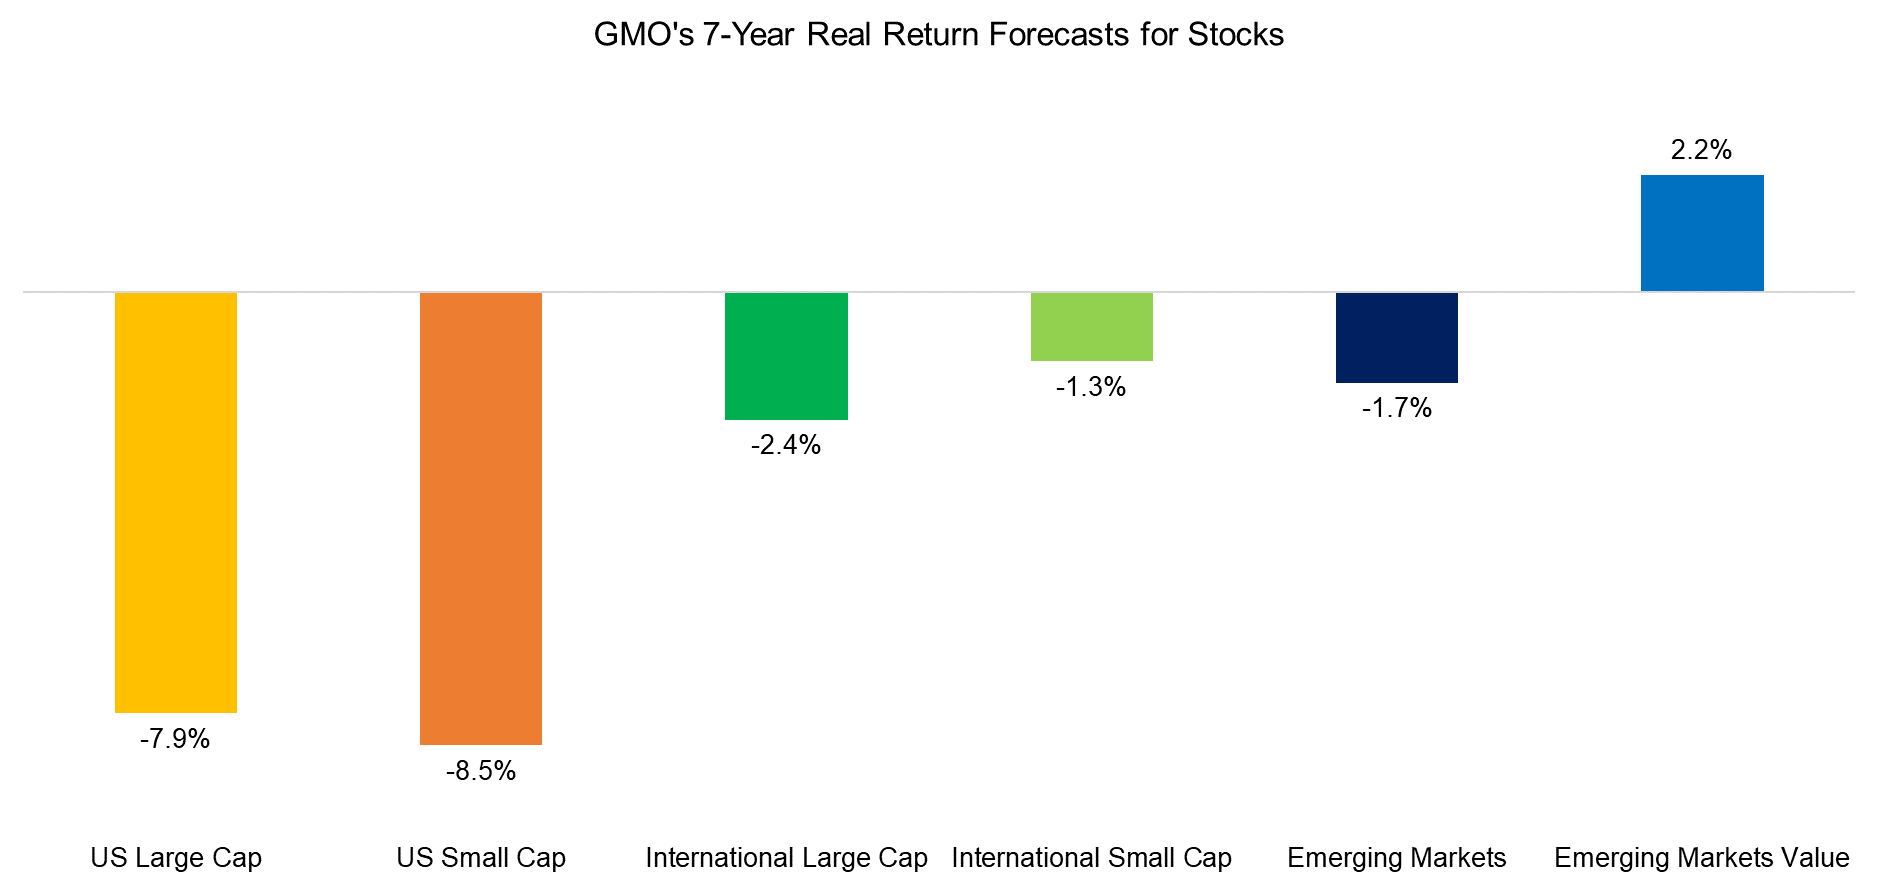 GMO's 7-Year Real Return Forecasts for Stocks